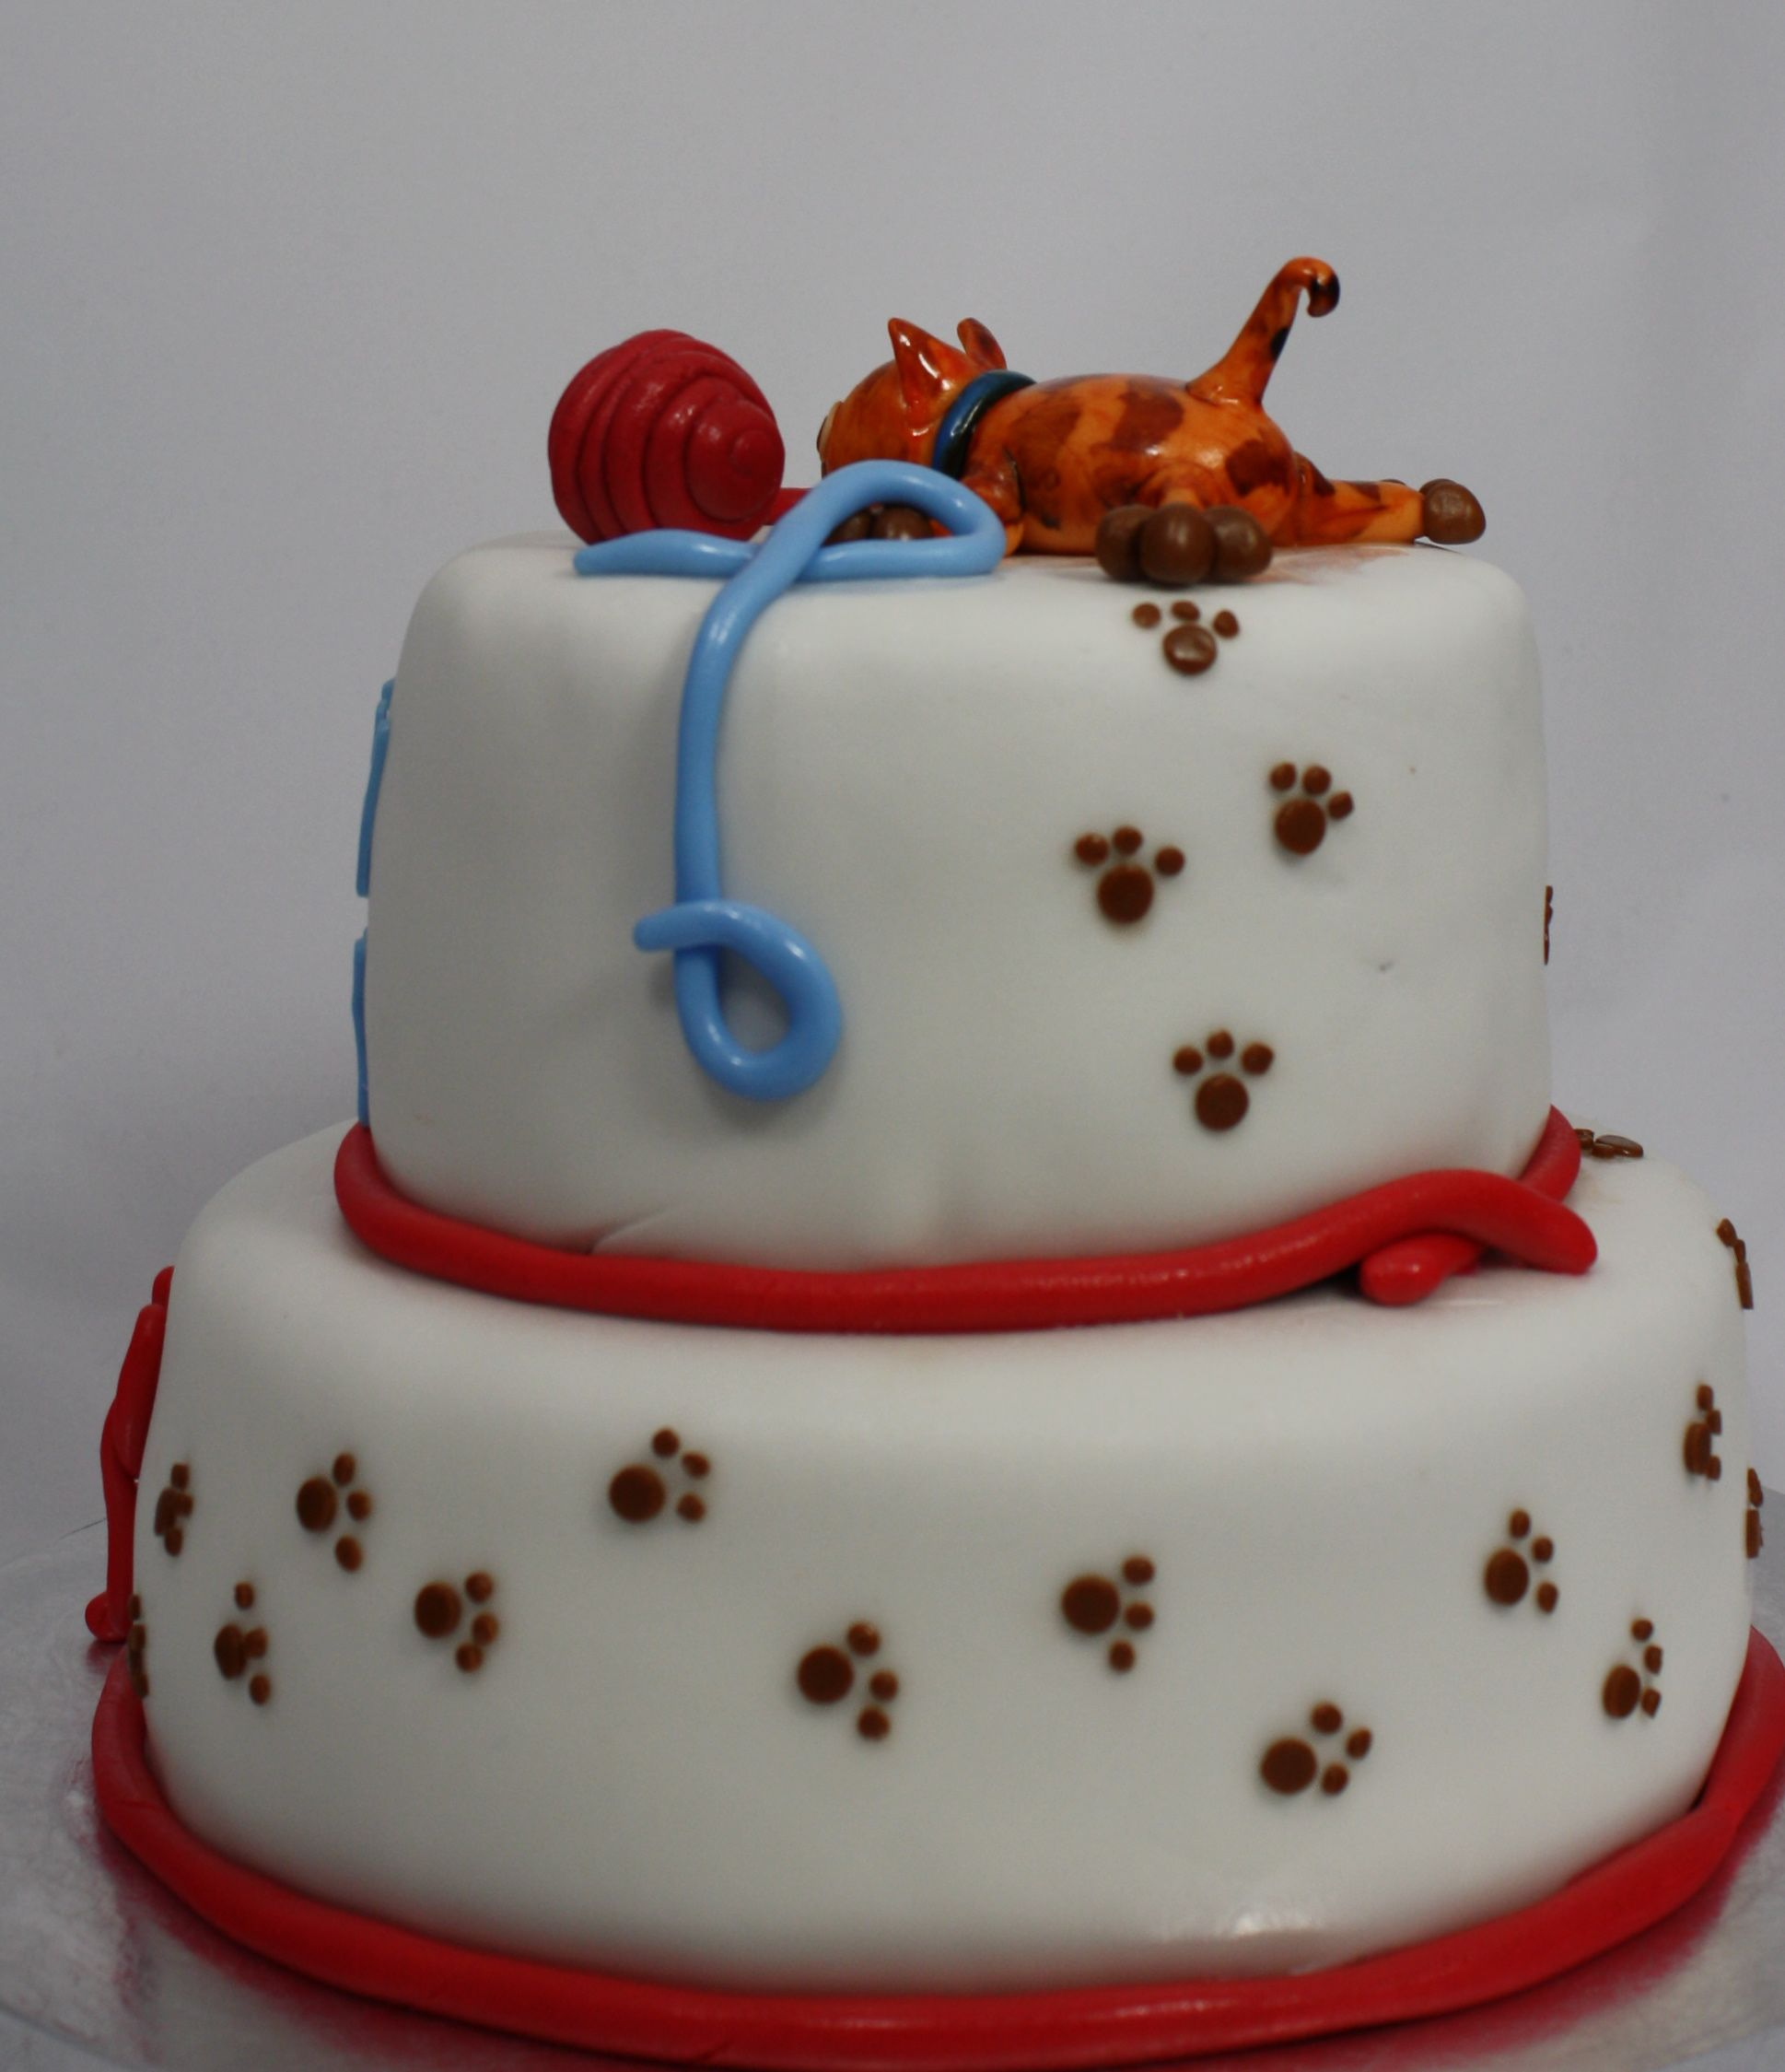 Posted in Birthday , Cakes , Uncategorized | Leave a Comment »